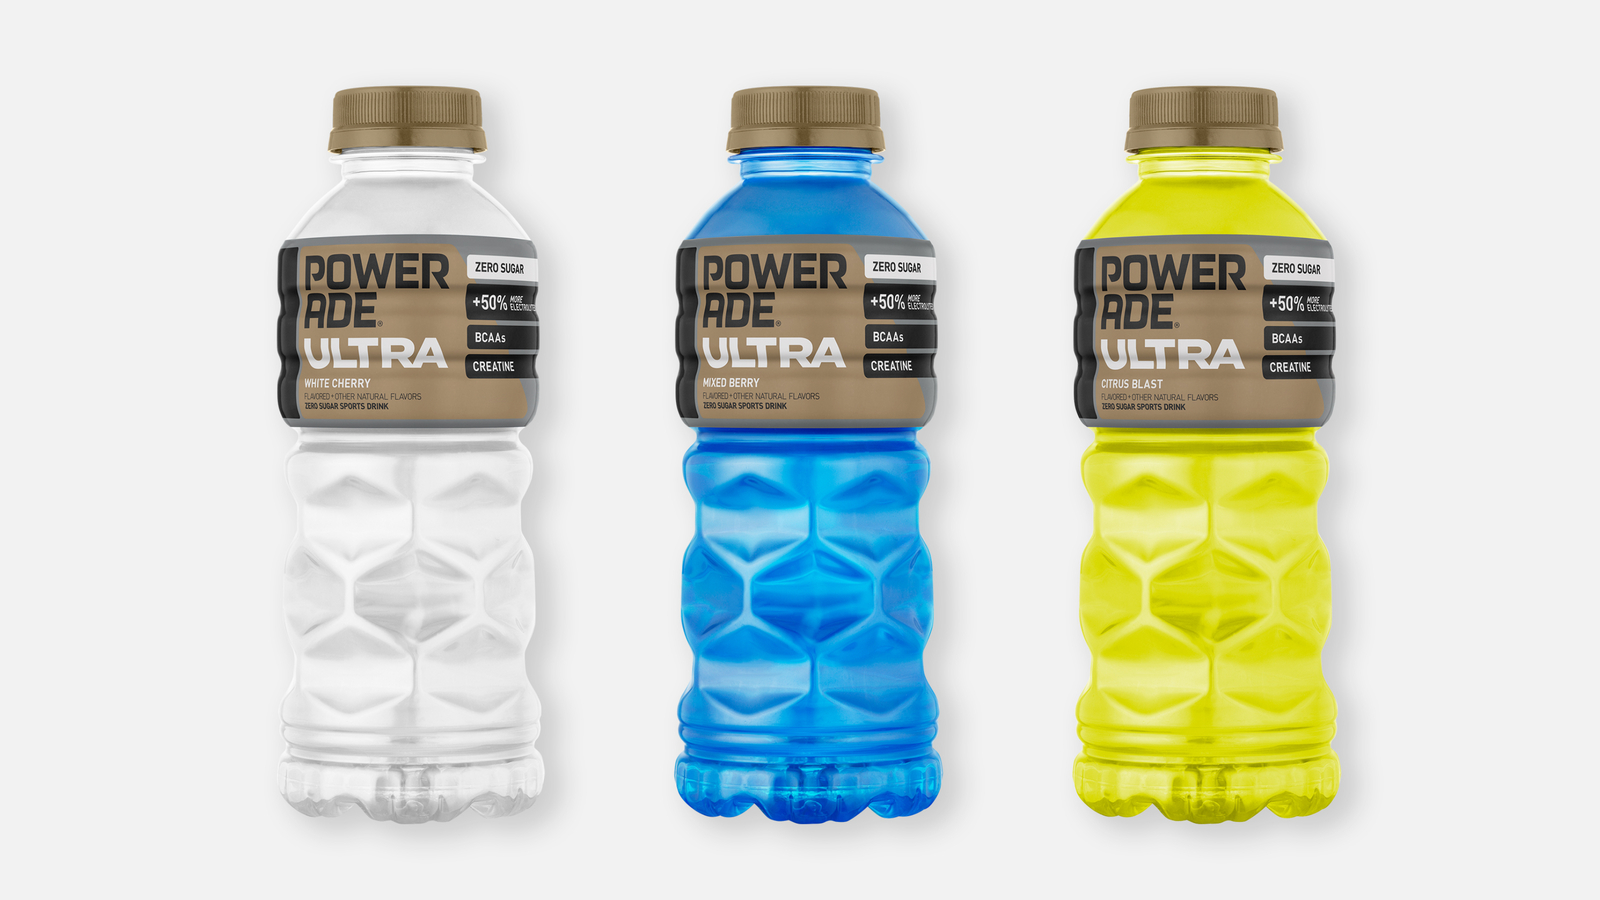 Powerade is getting a makeover for the first time in more than a decade